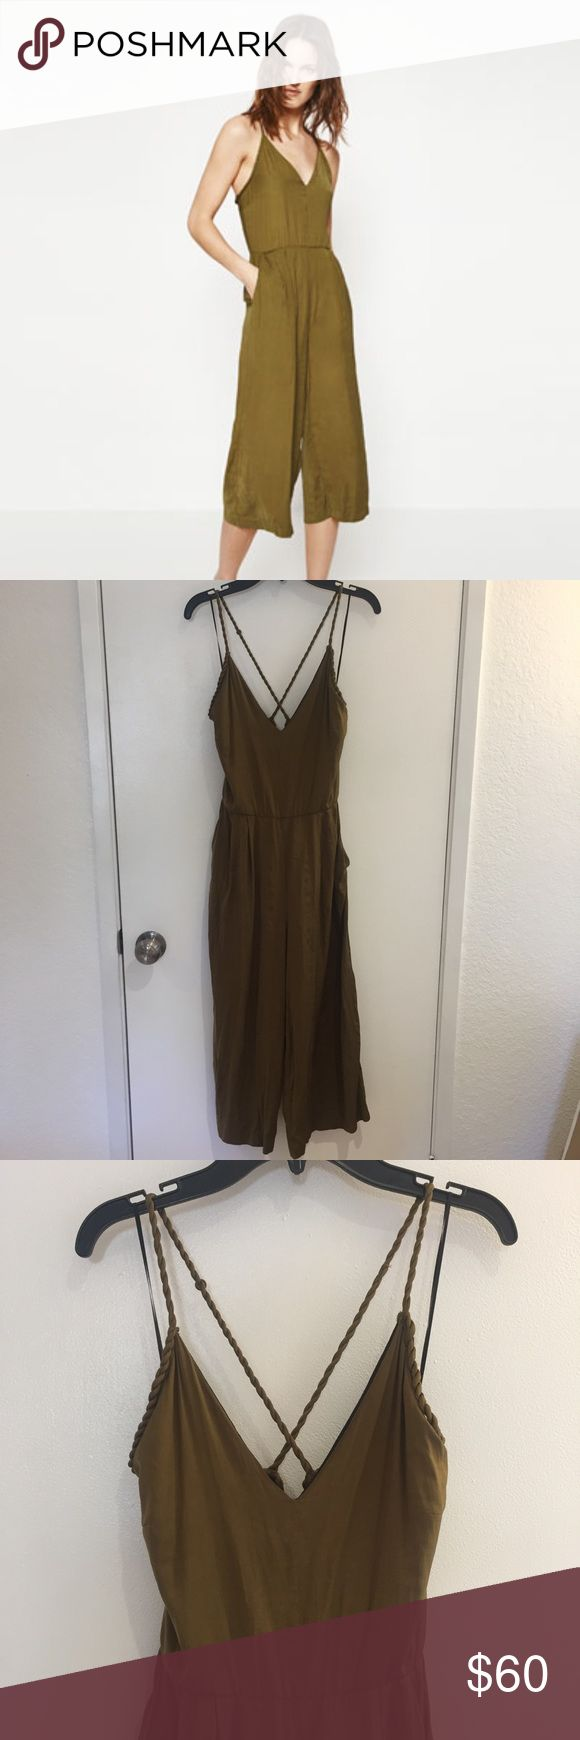 """Zara Jumpsuit Olive green jumpsuit that zips up the back. Silky material. In great condition. Worn only 3 times. Waist is 11.5"""" and chest is 15"""" wide. Can be dressed up or worn casually Zara Dresses"""